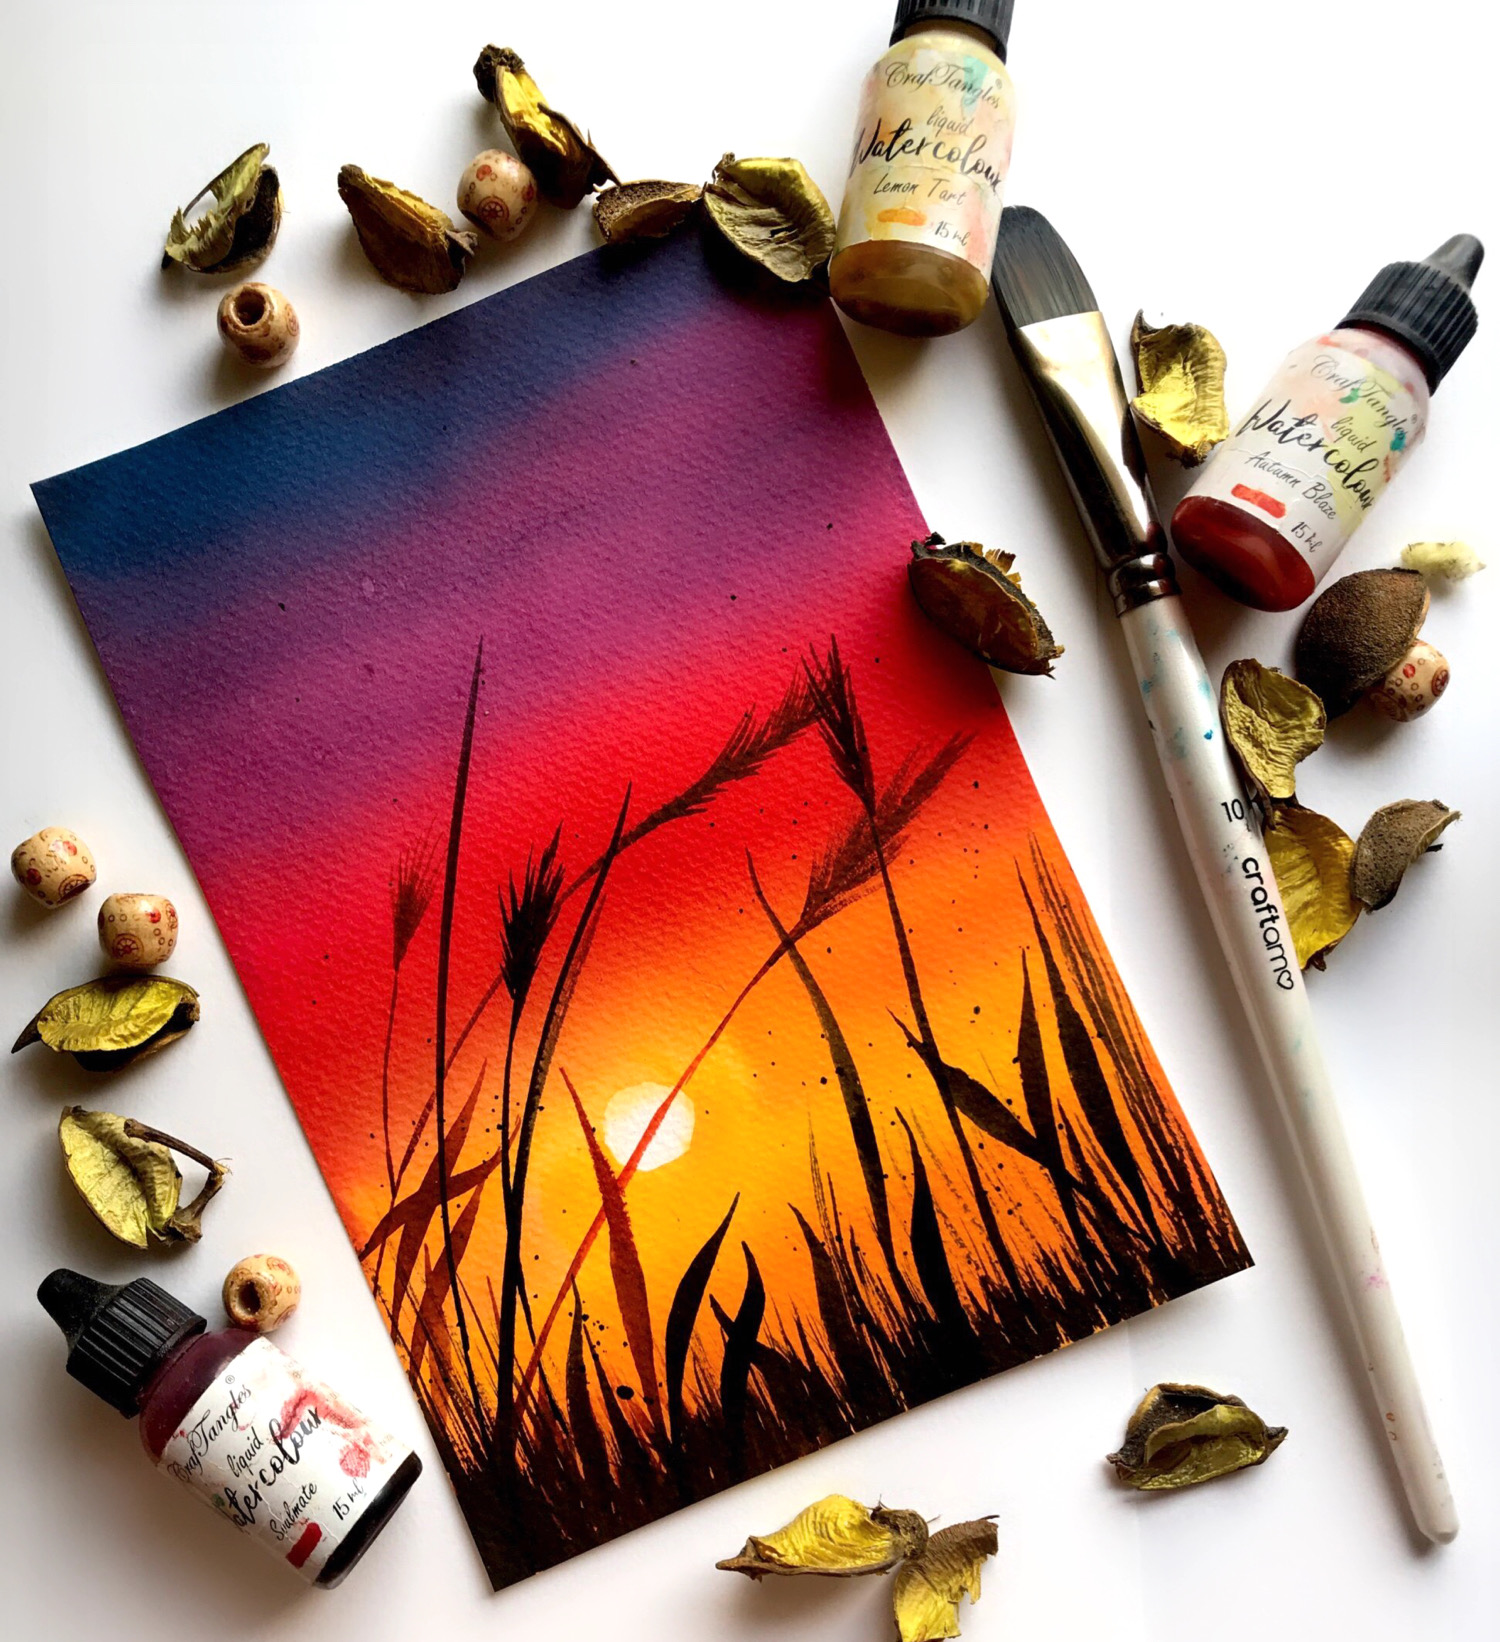 Gorgeous Sunset - Watercolor edition 2